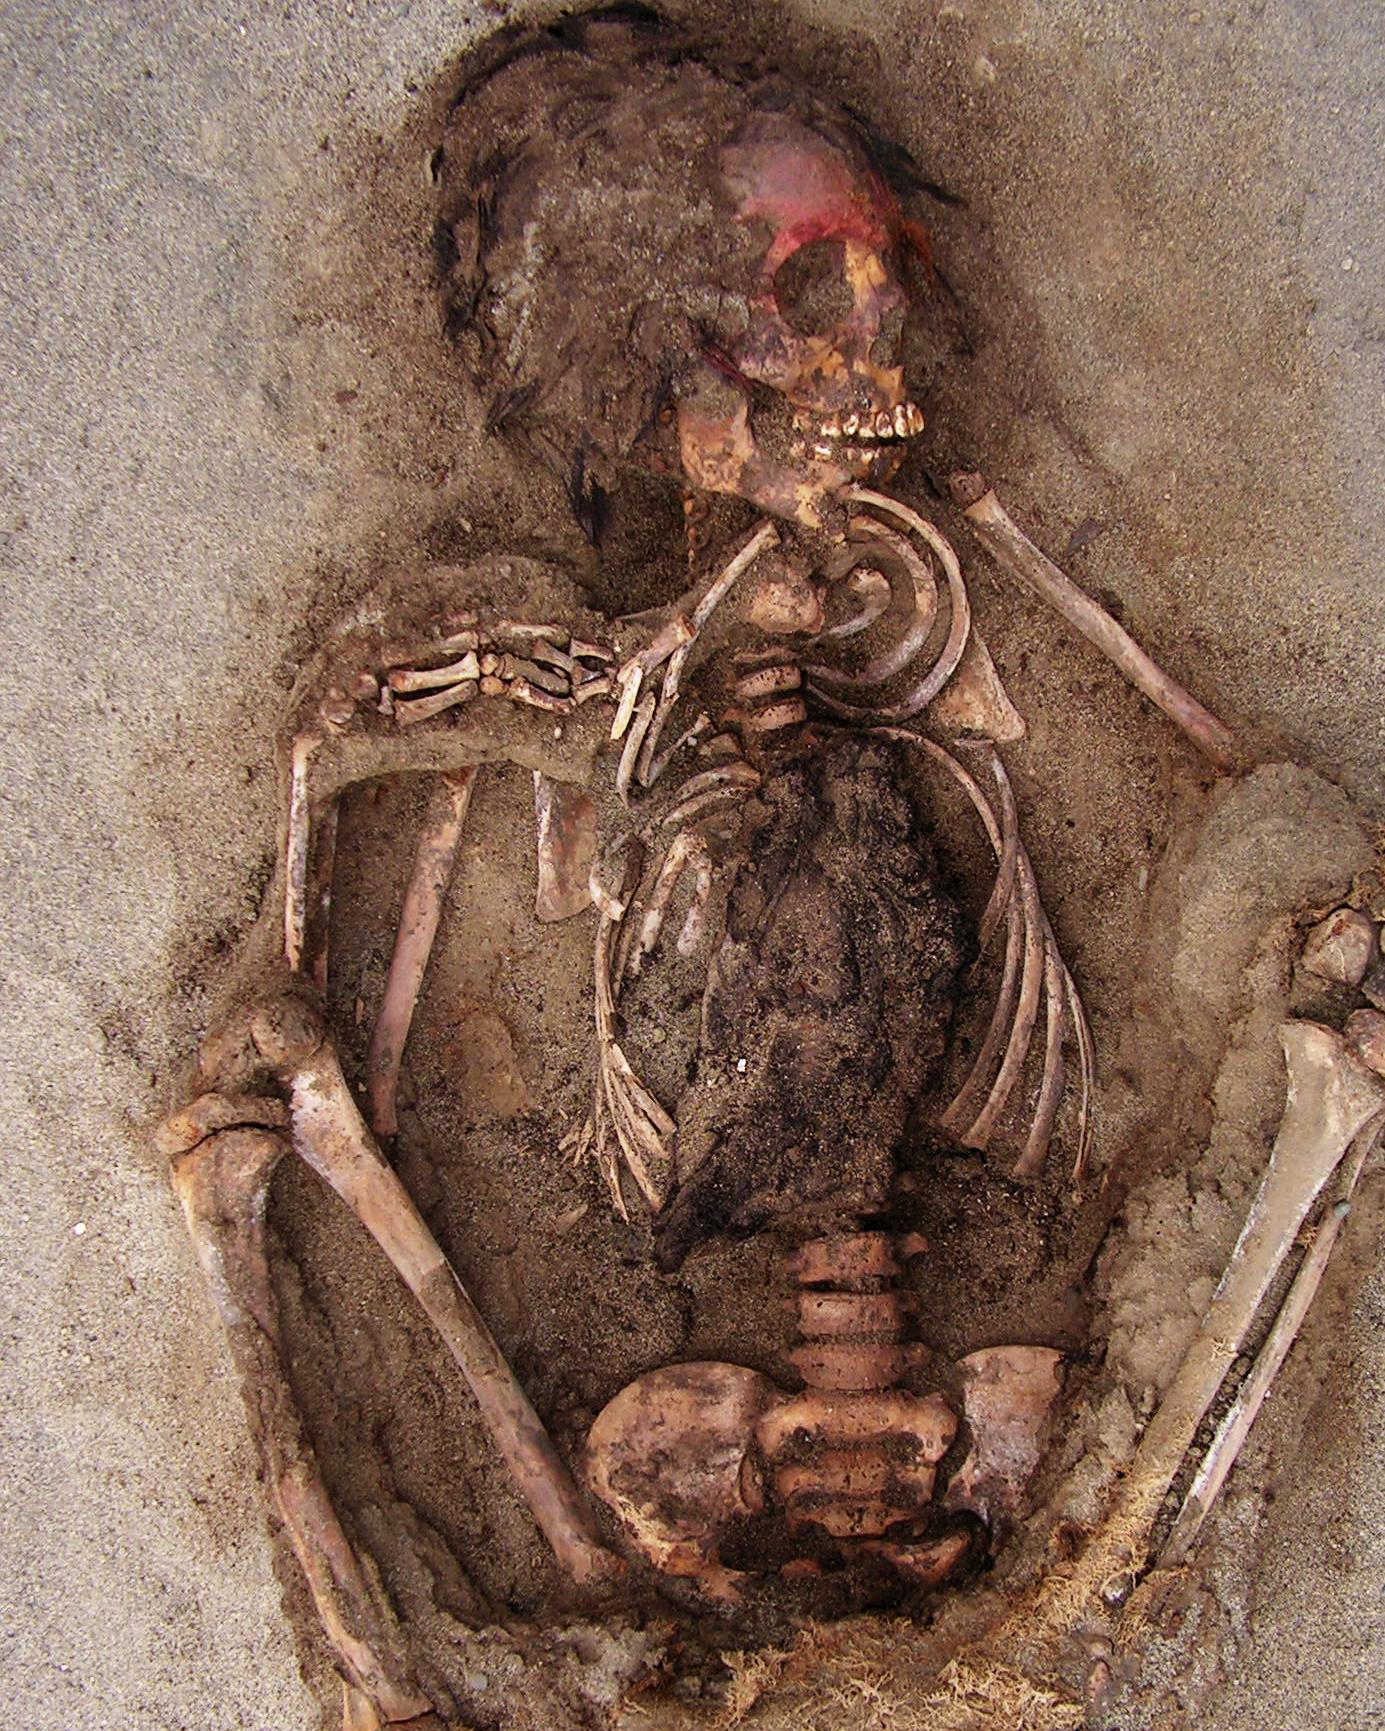 Largest known child sacrifice site discovered in Peru